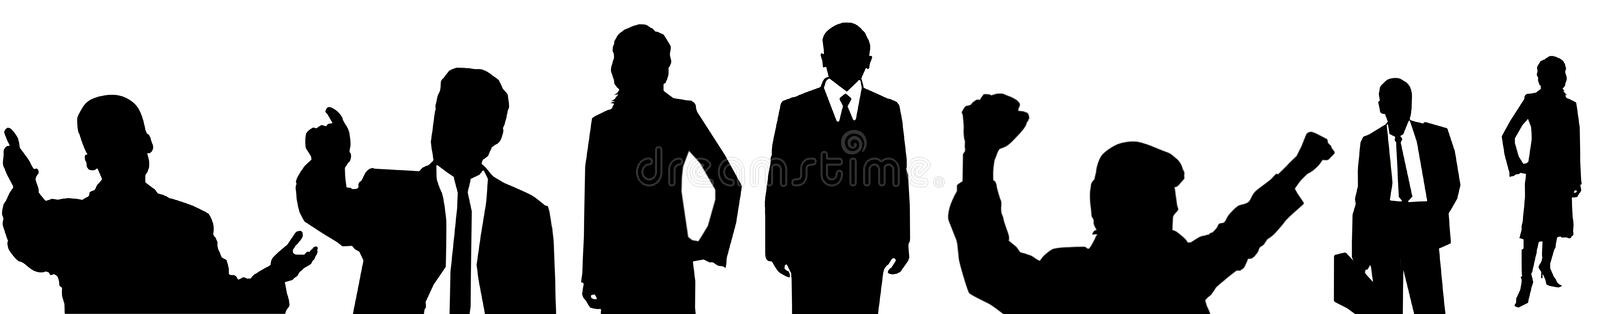 Office-workers stock illustration